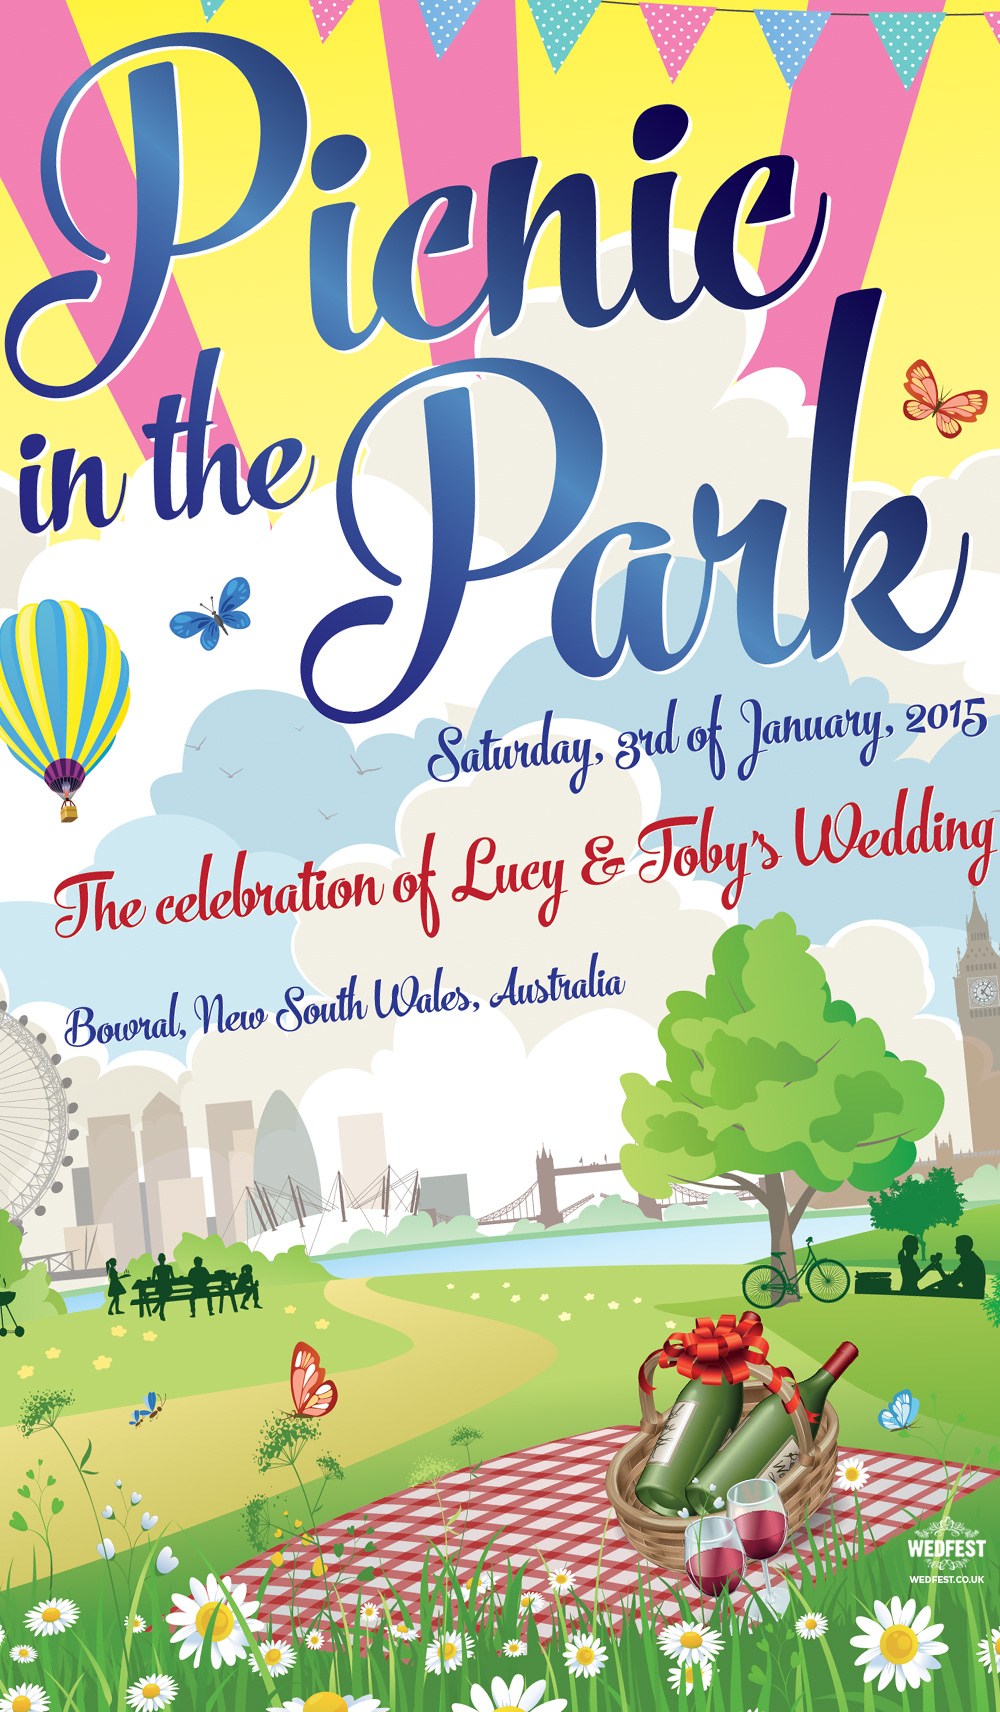 London Picnic theme wedding